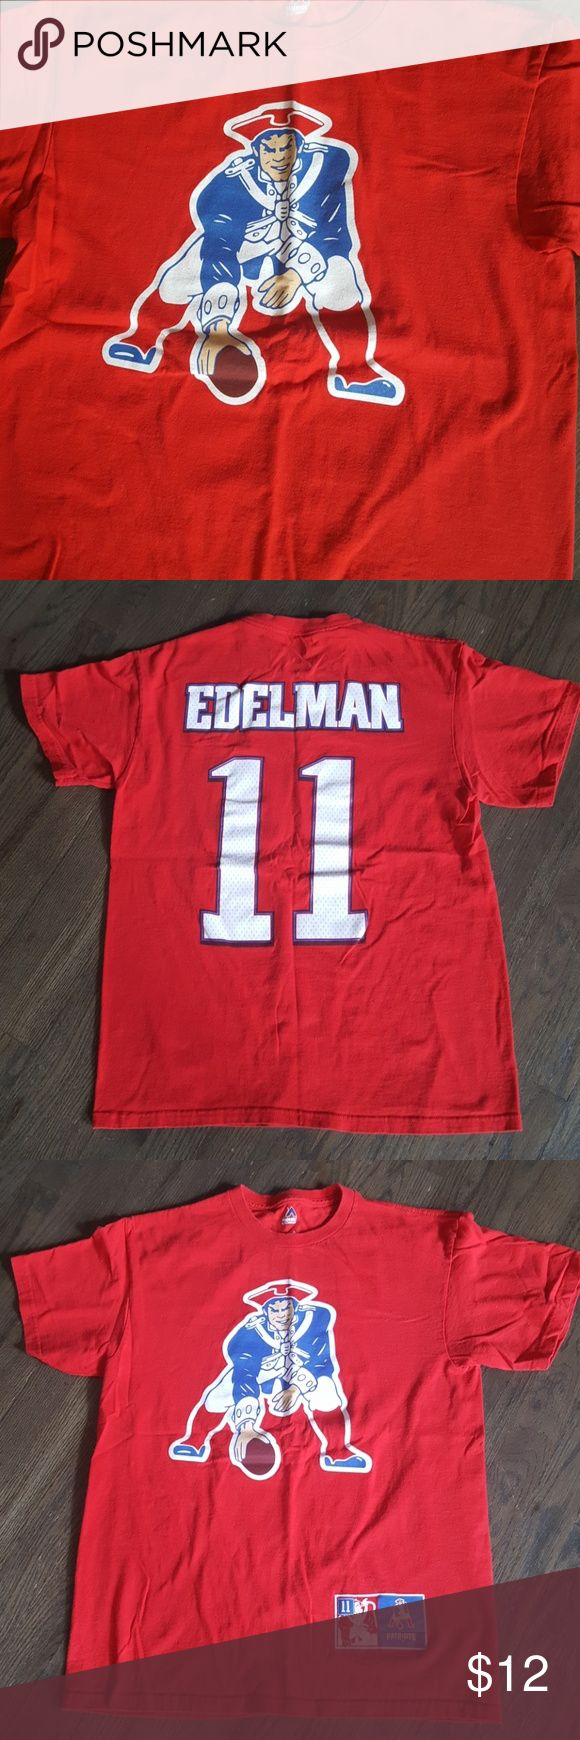 """Patriots Pride Edelman #11 T-Shirt Purchase today, get it in time for Sunday's game!  Authentic item purchased at Patriots Place, only worn once or twice. Measures 19"""" across chest,  25"""" shouldwr to hem. Majestic Shirts Tees - Short Sleeve"""